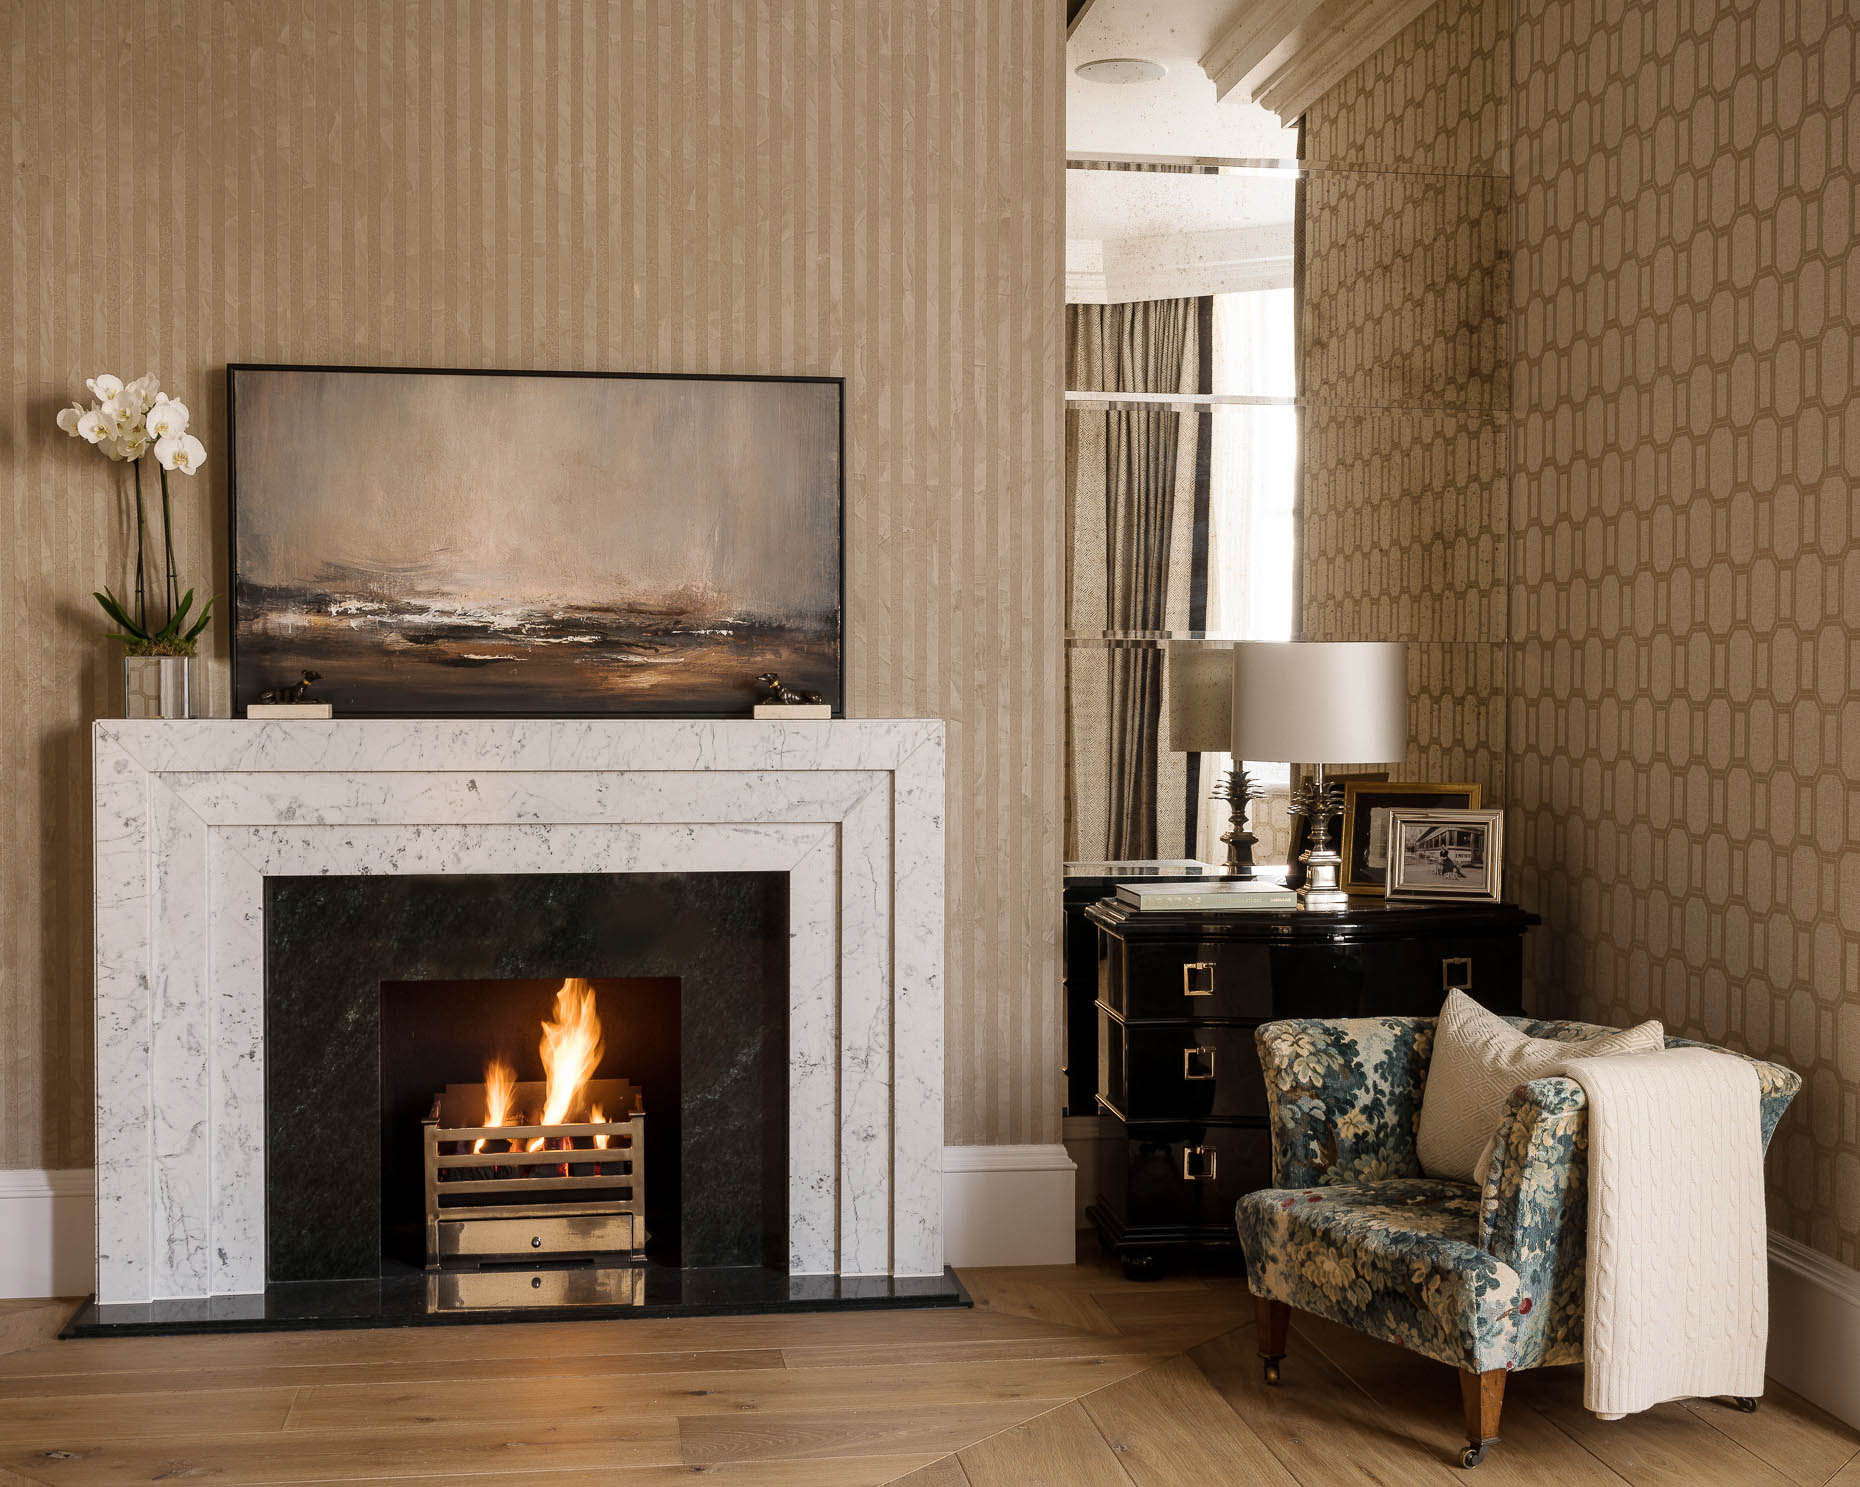 interiors-photography-london-fireplace-living-room-phillimore-gardens-kensington-02